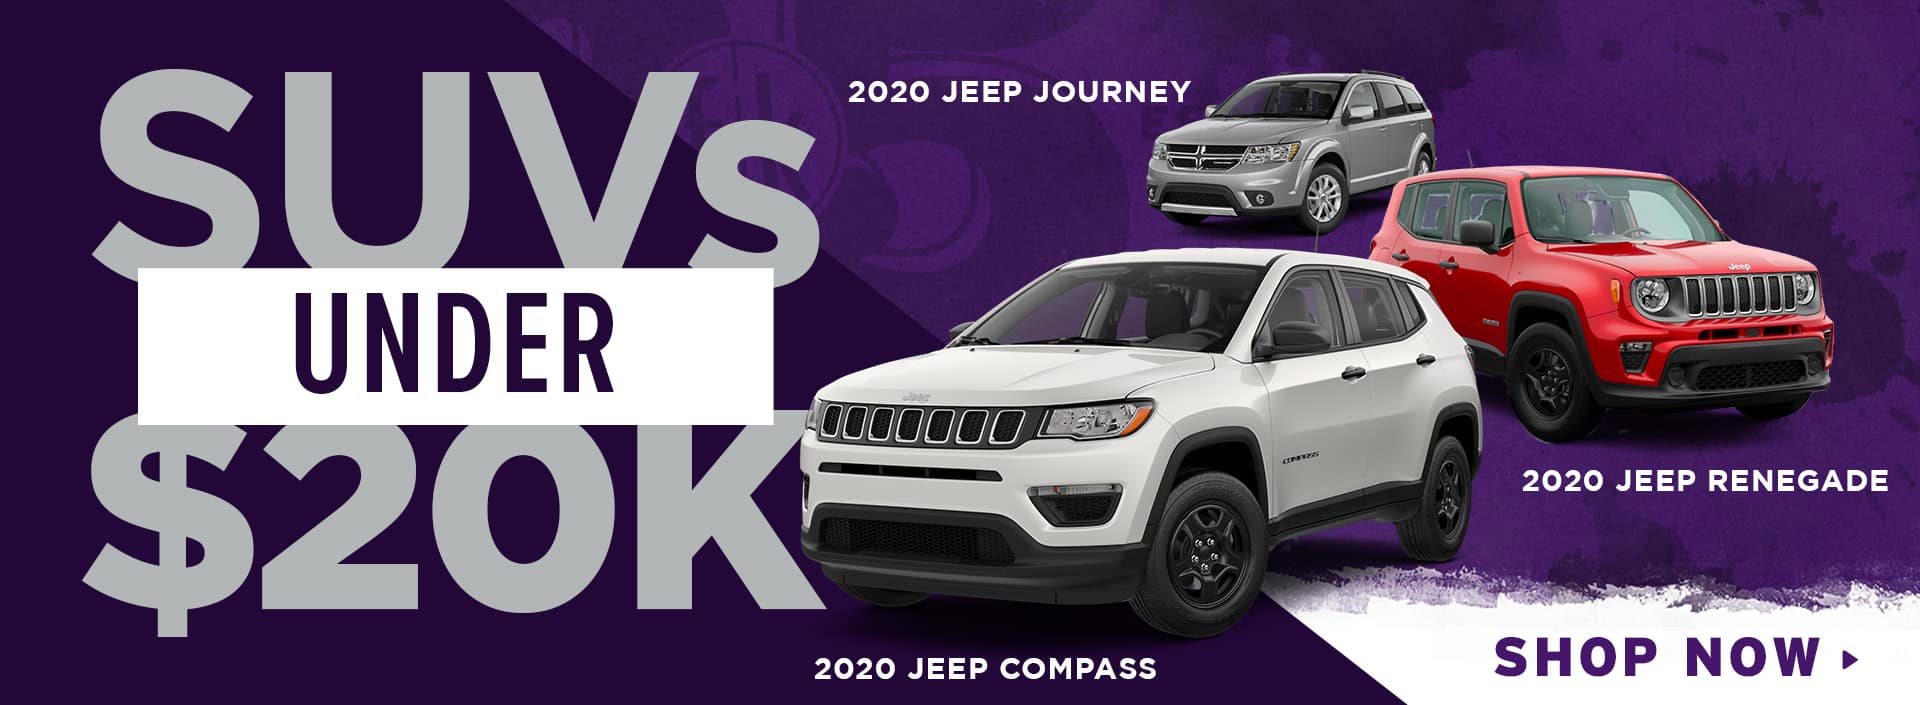 SUVs Under 20k (Journey, Renegade & Compass)